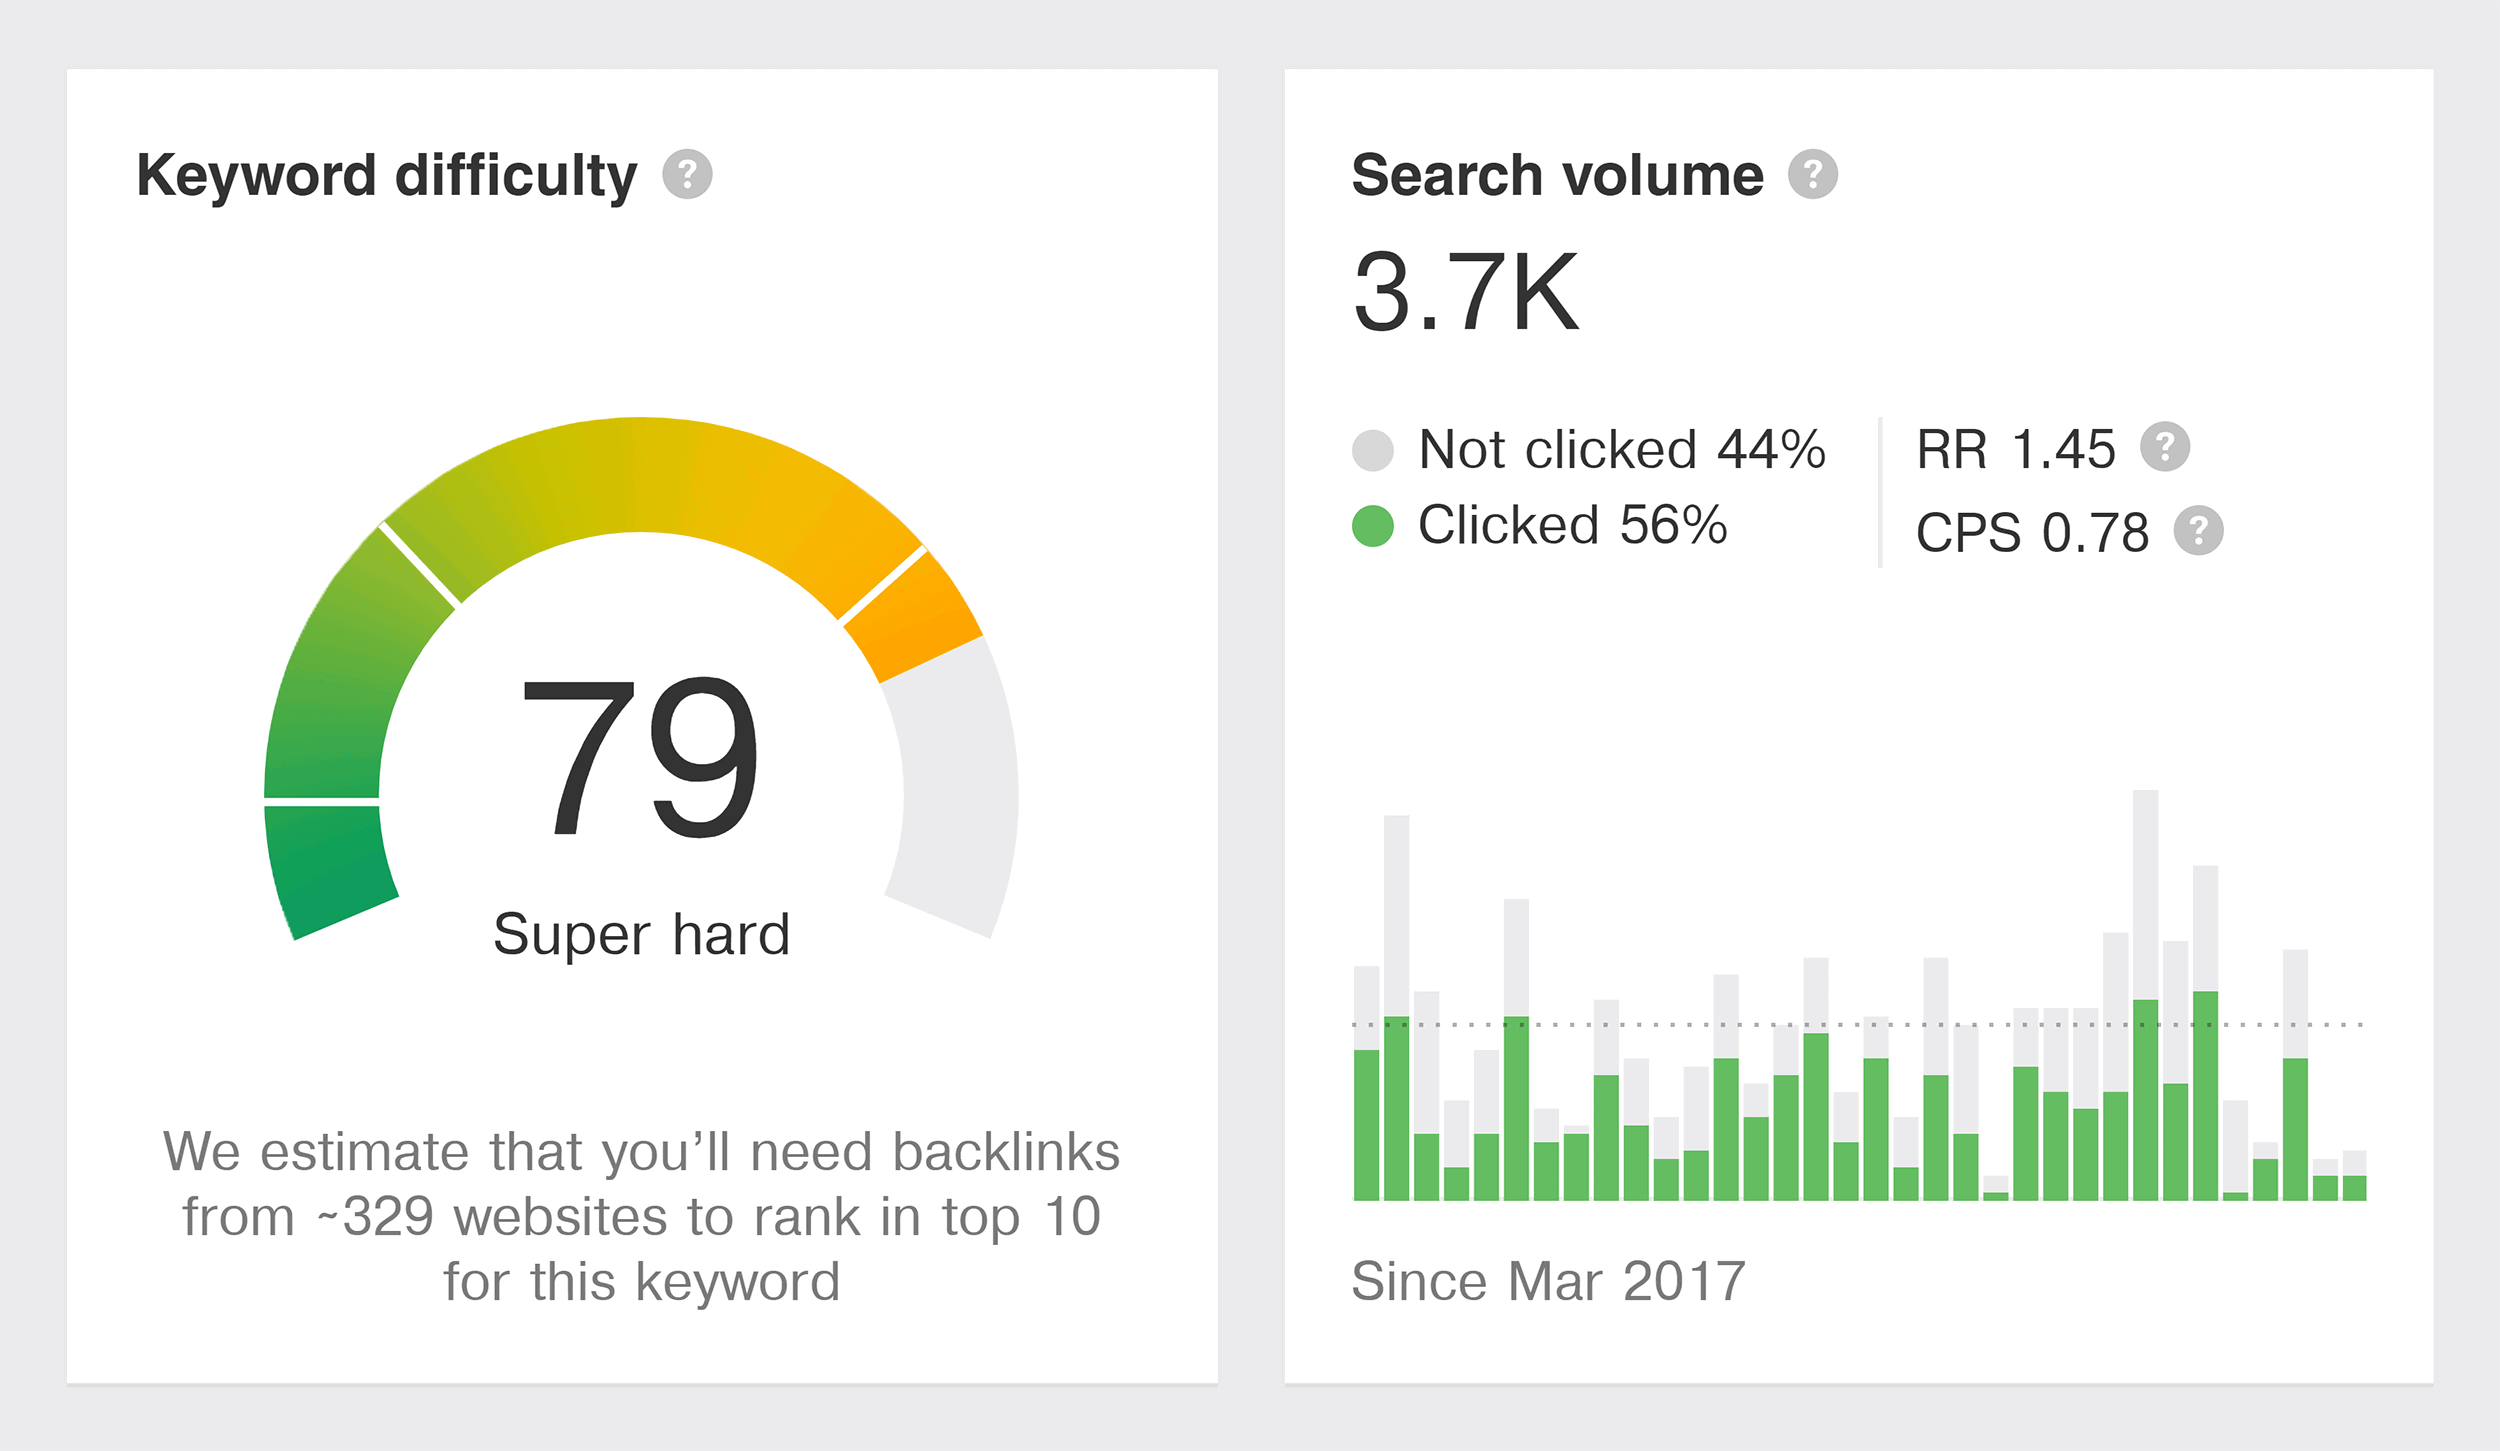 Keyword difficulty and search volume